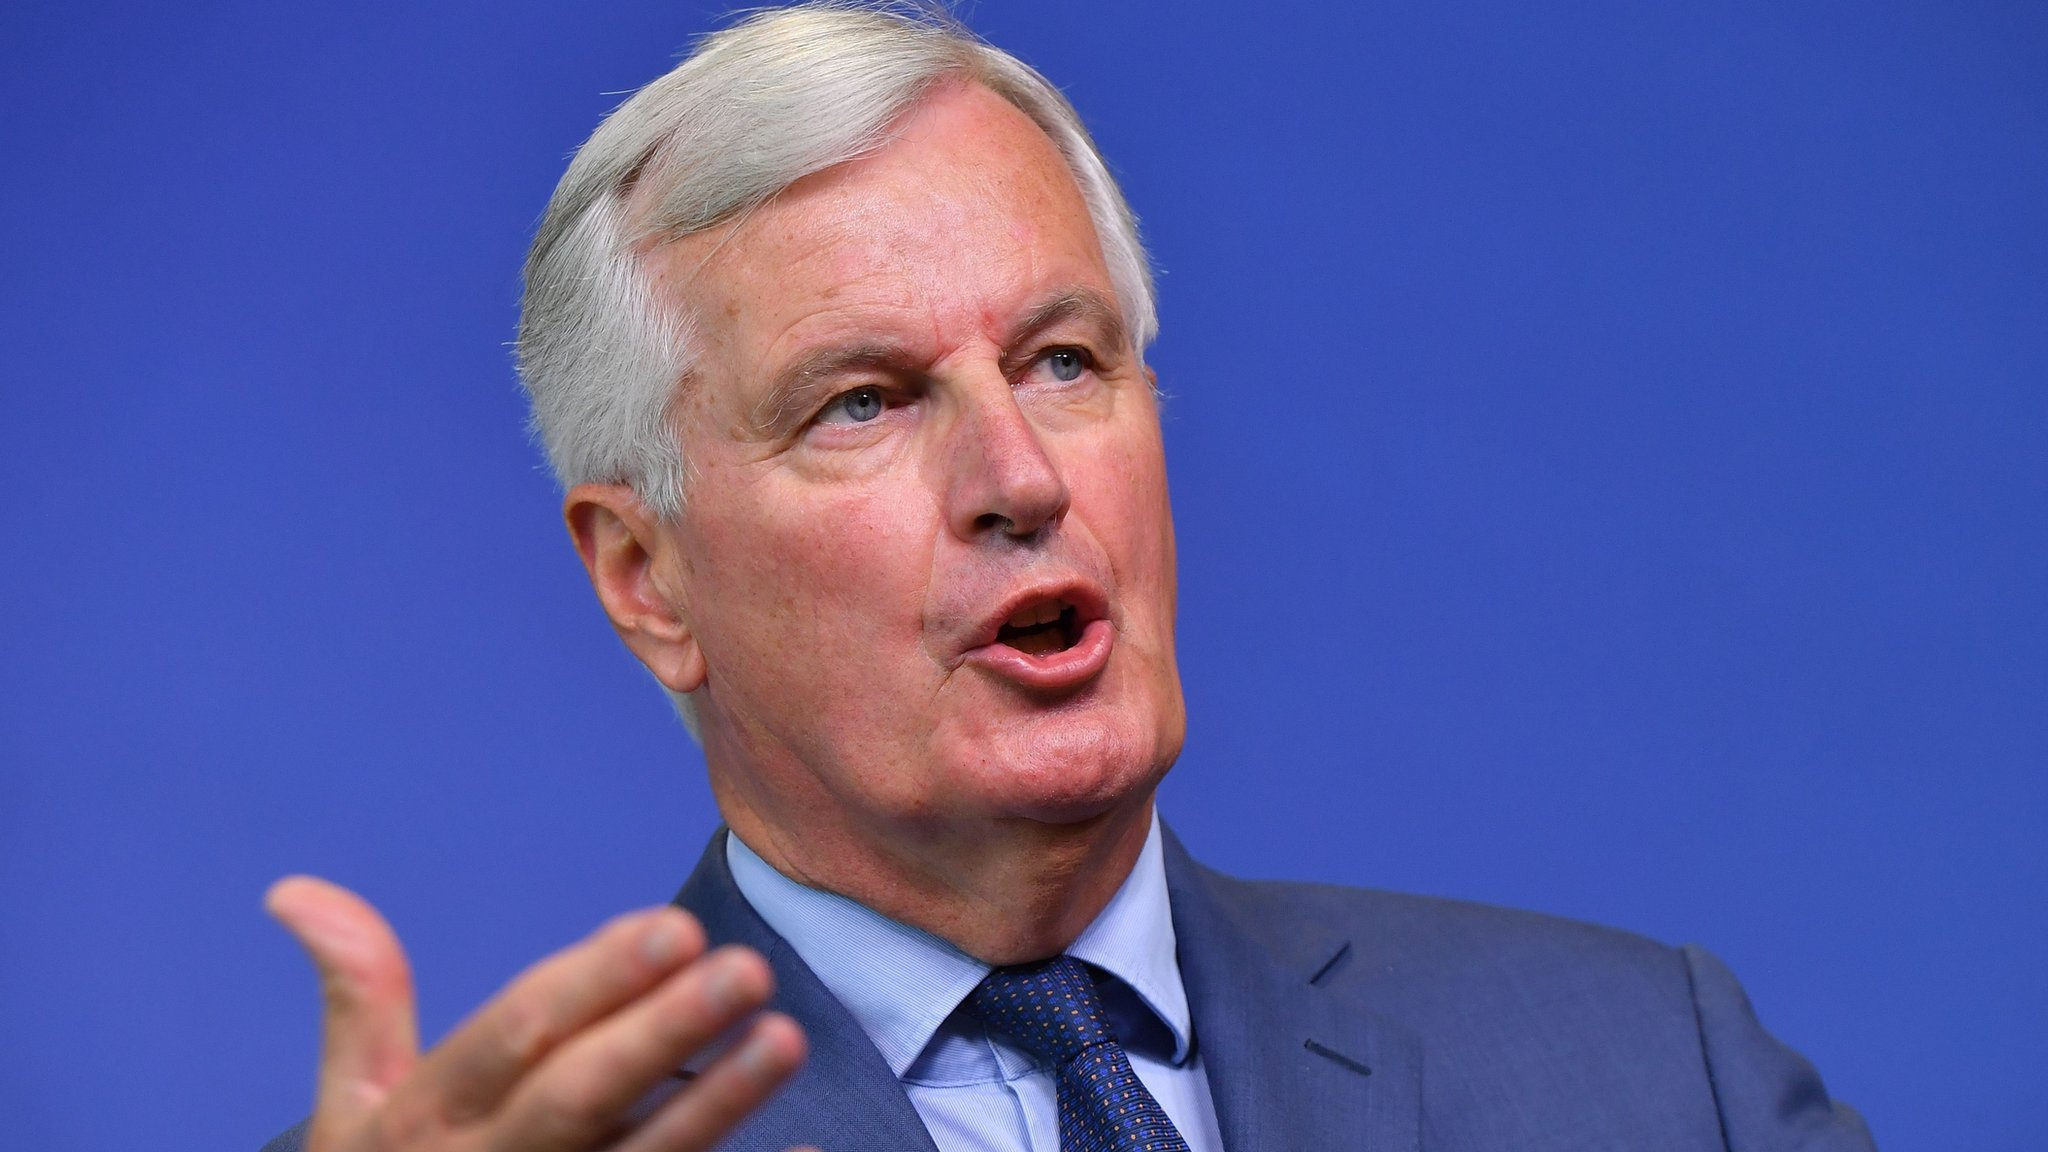 Brexit: Barnier says agreement possible by early November